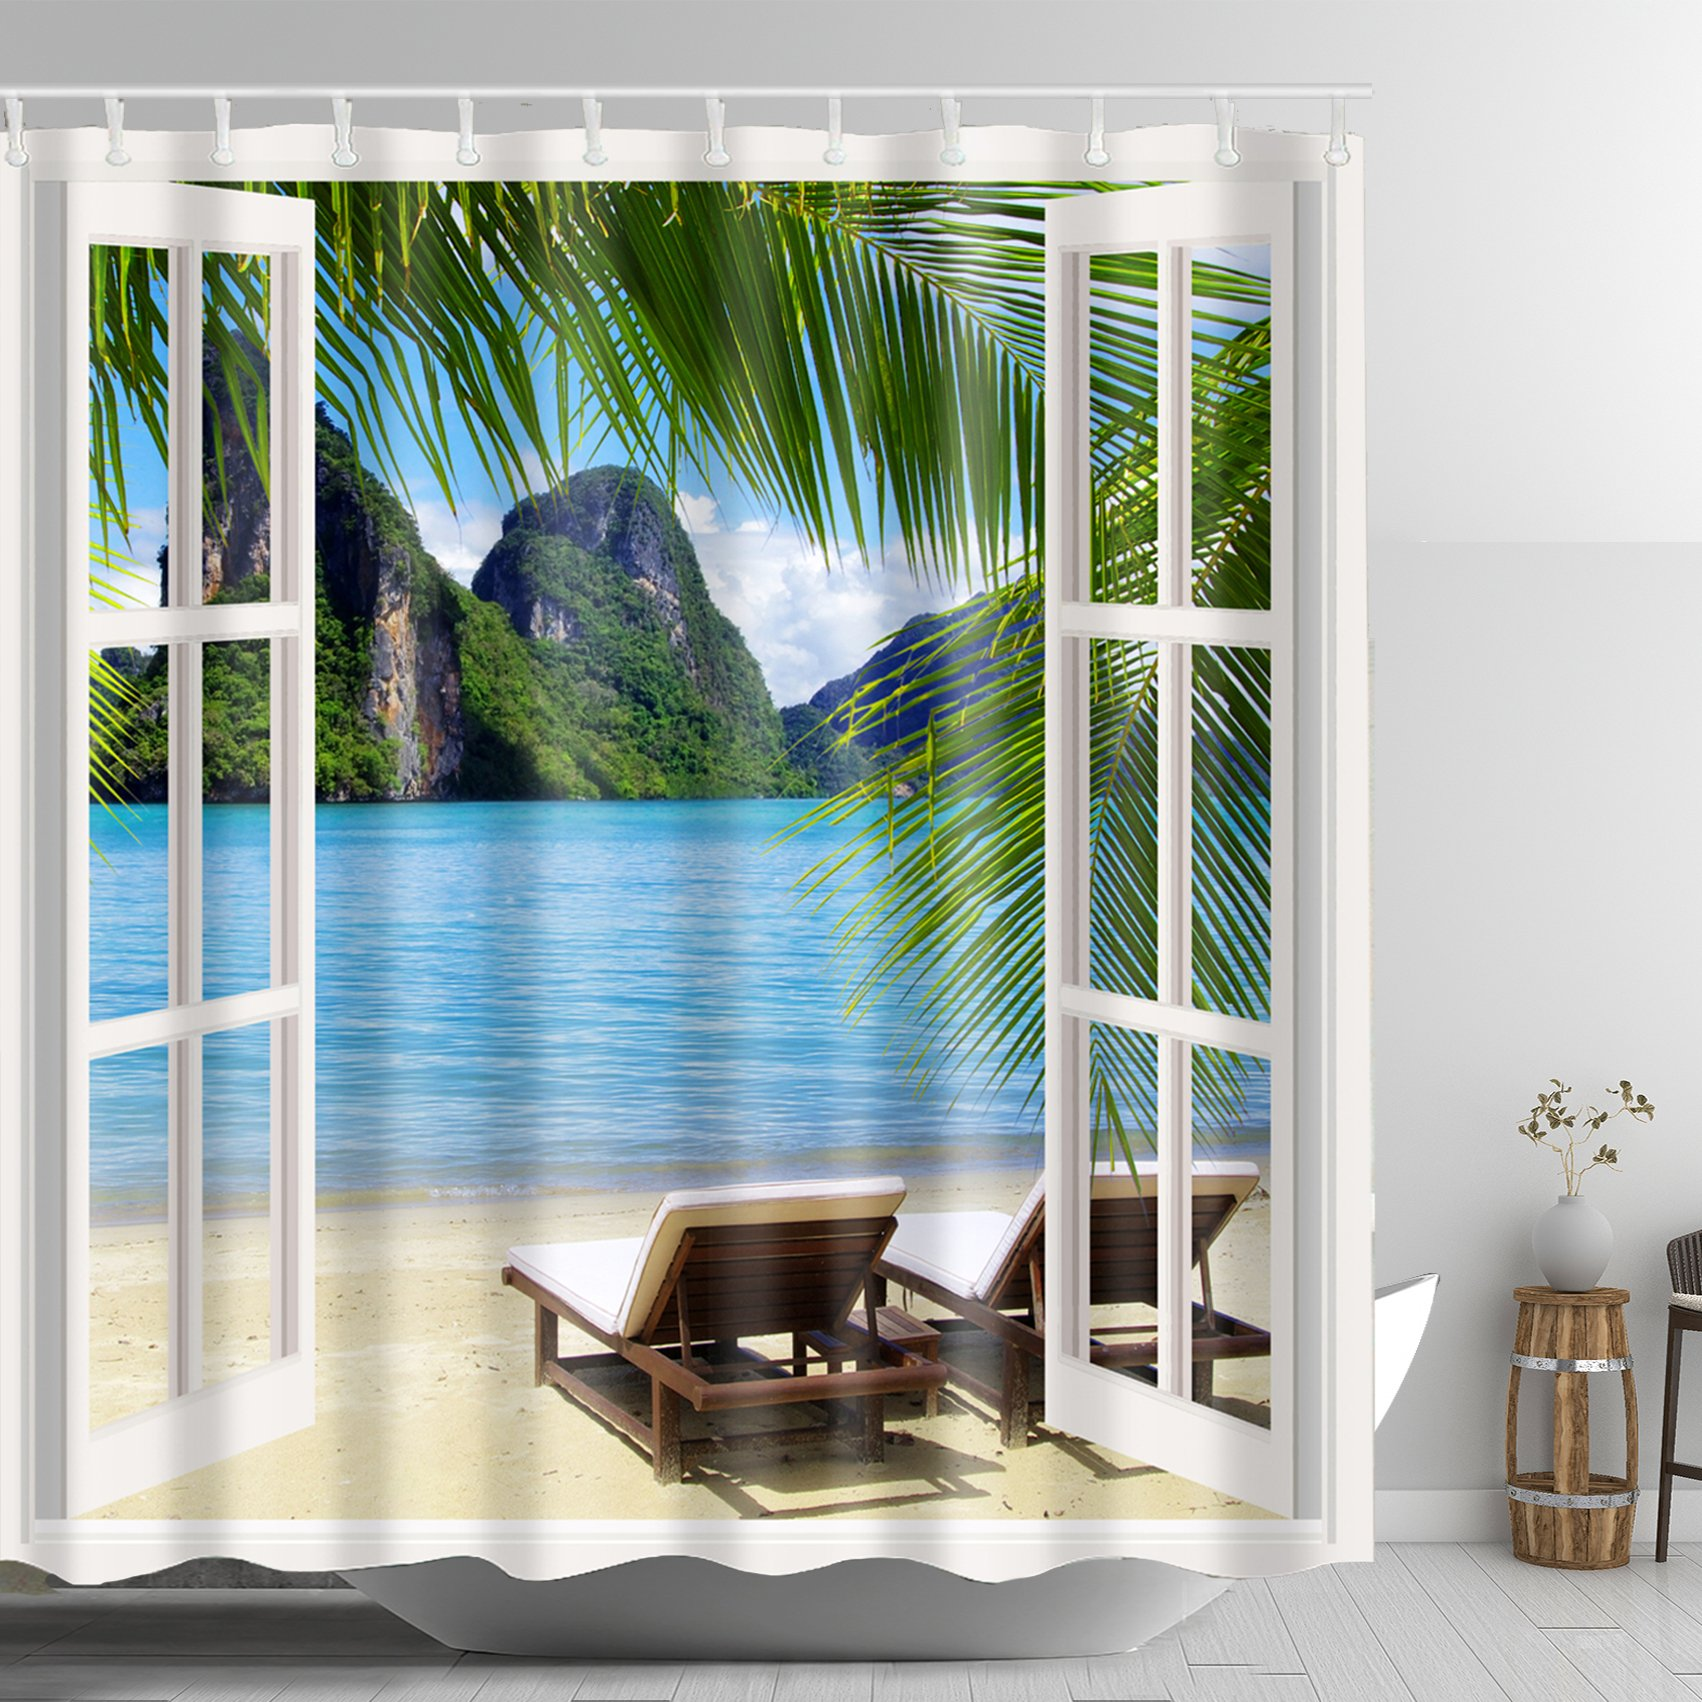 ABxinyoule Palm Beach Recliners through White Wooden Window Shower Curtain Landscape Scenery Waterproof Fabric Polyester